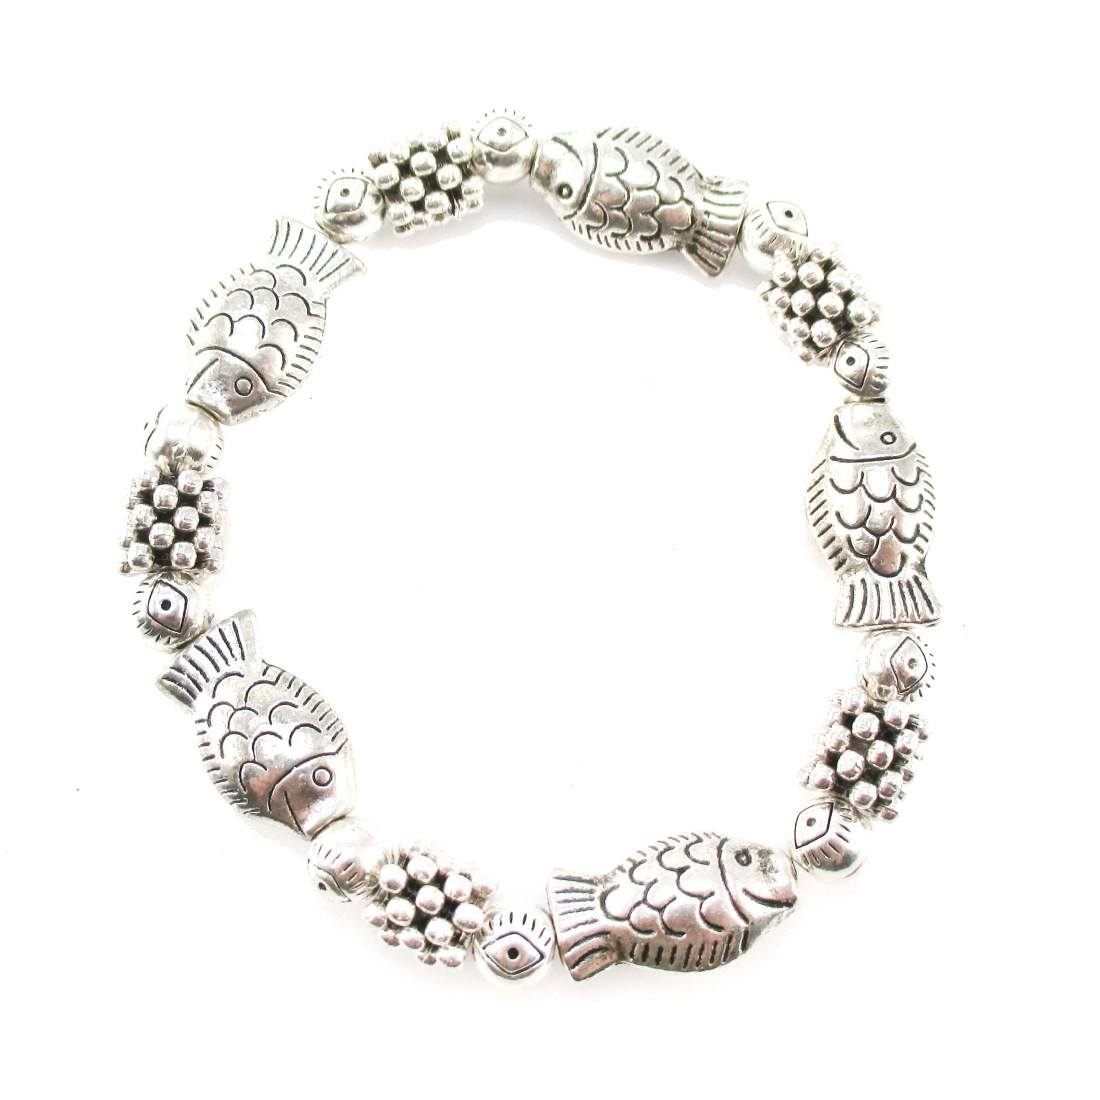 Fish Shaped Beaded Charm Stretchy Bracelet in Silver